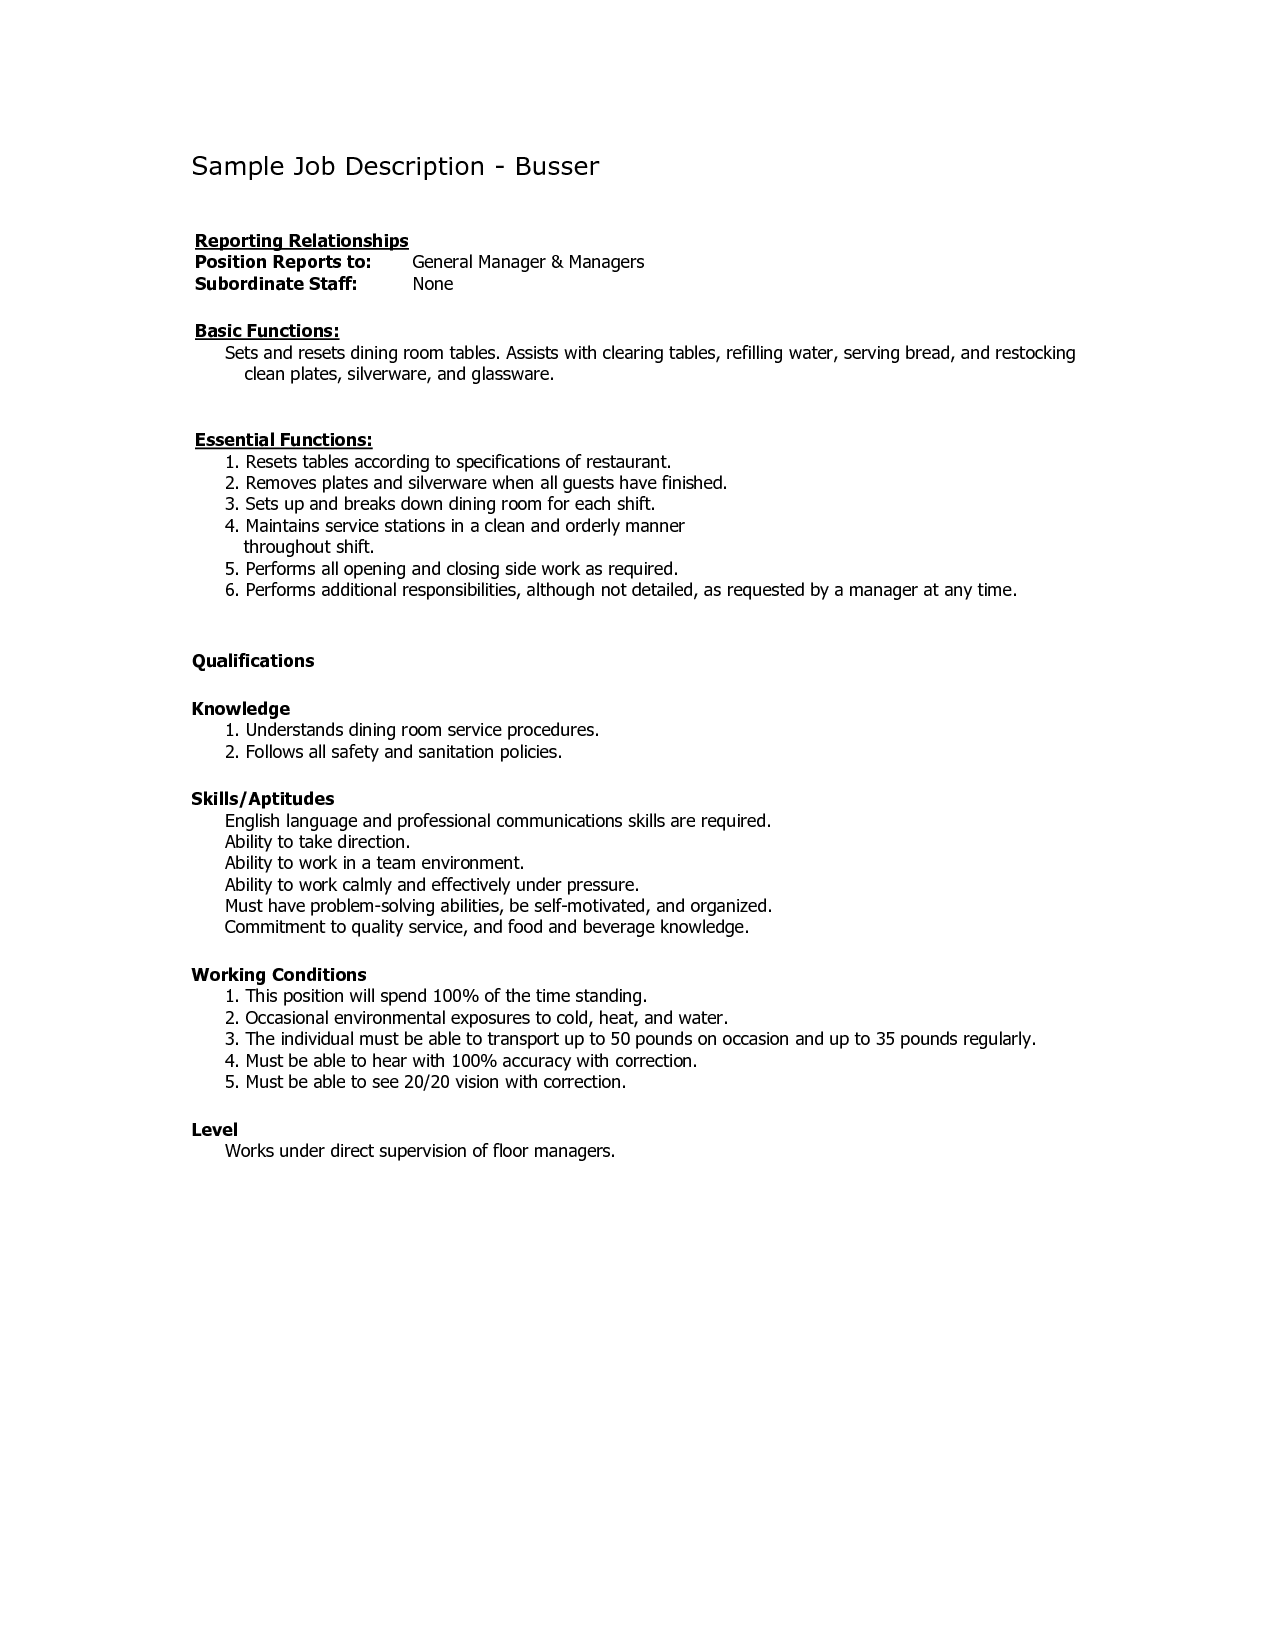 resume job duties waitress resume sample resume job duties waitress waiter and waitress job description duties and jobs part 1 resume sample